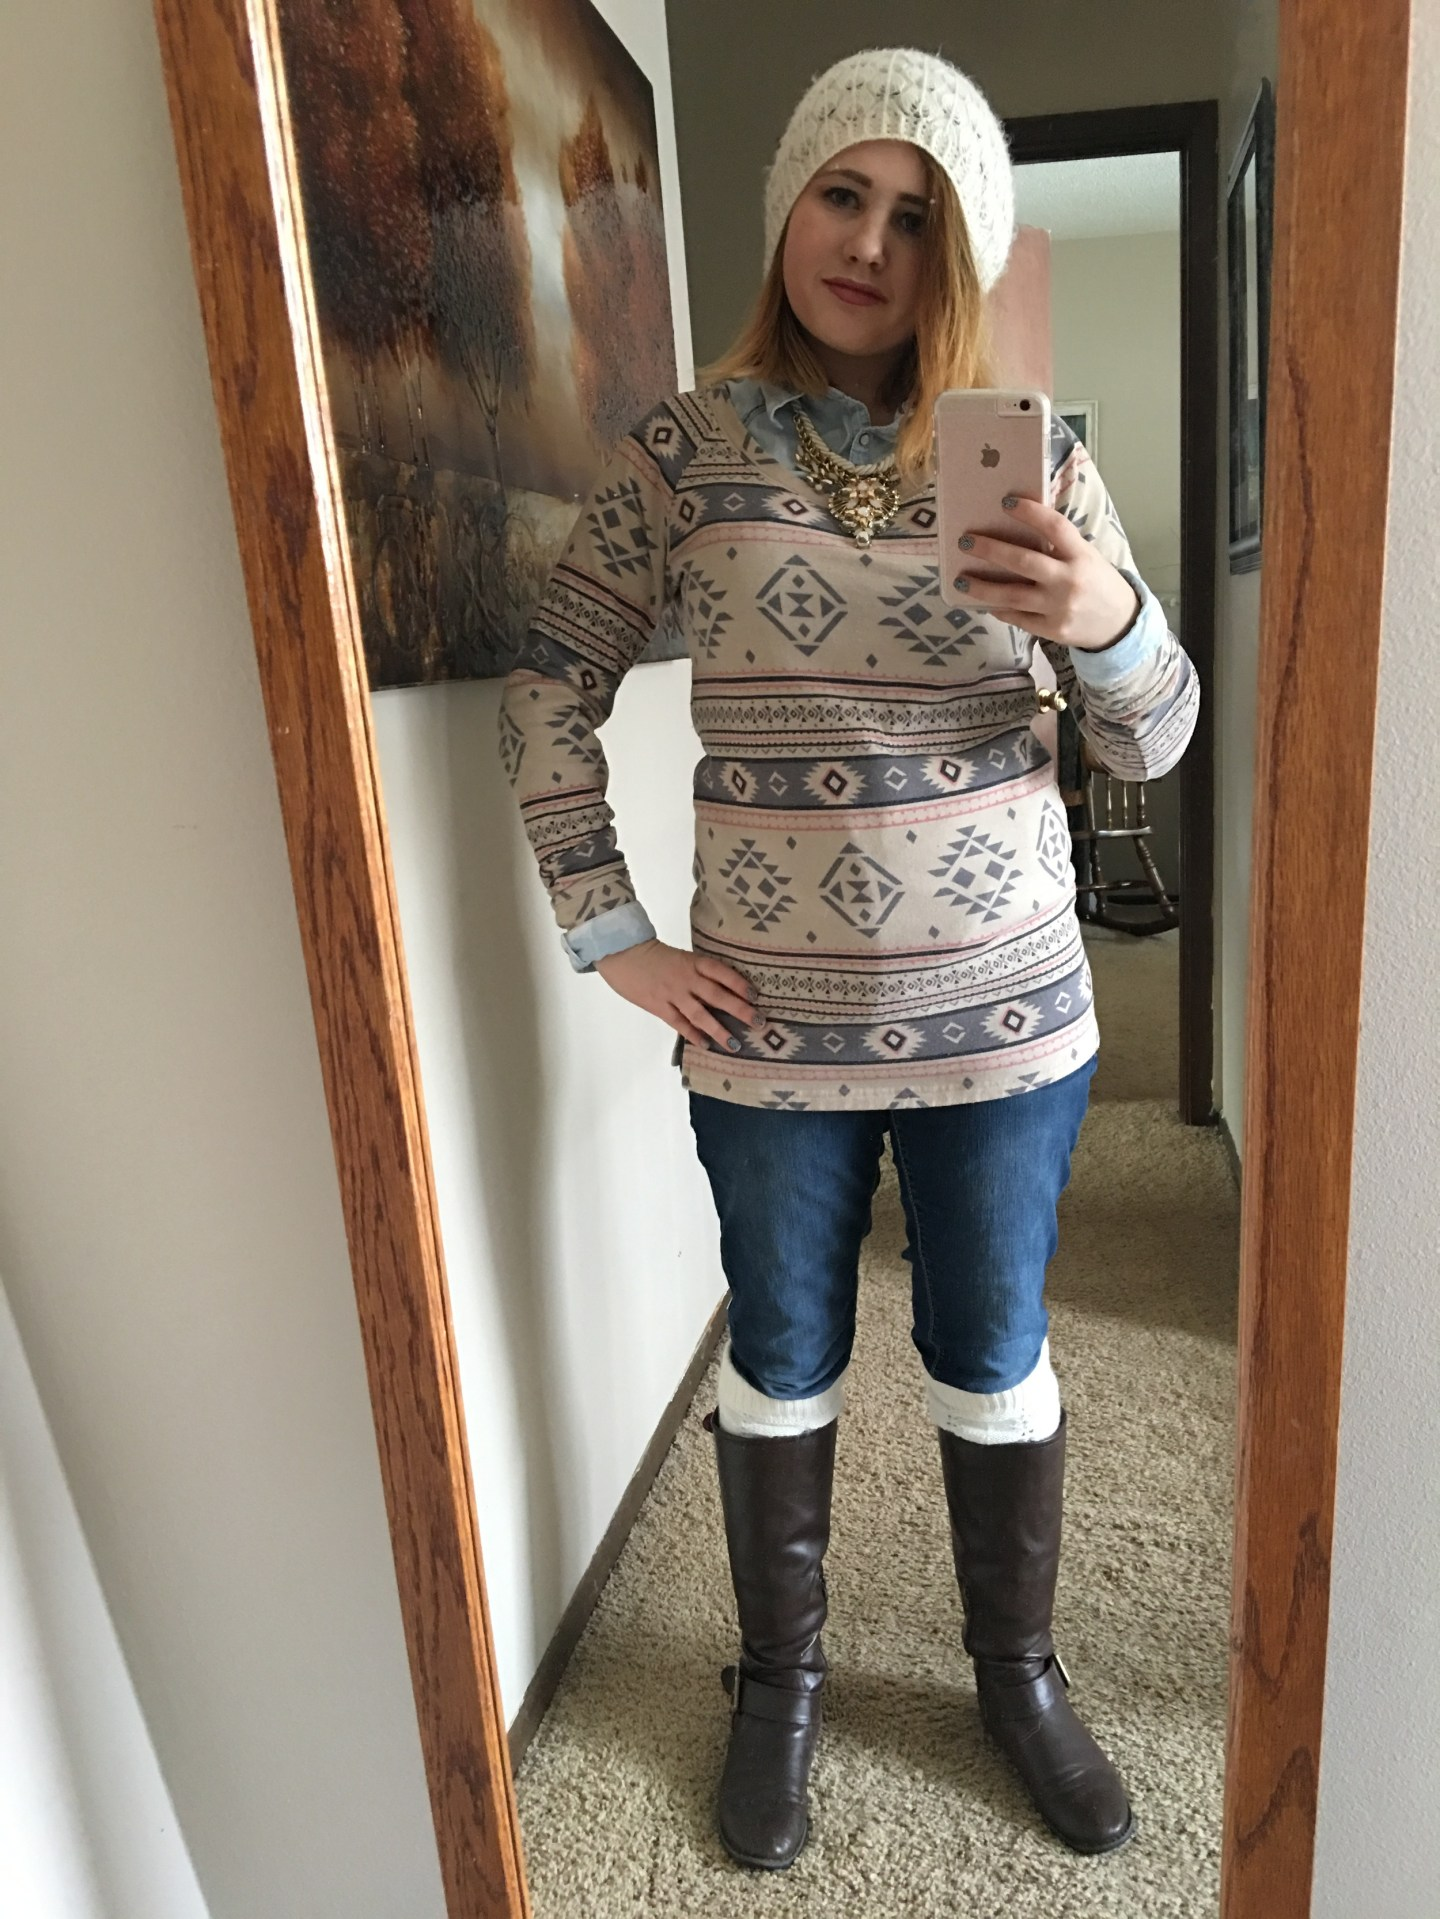 White beanie from Wet Seal, Aztec sweater from Maurices, leg warmers, brown boots from DSW, button up shirt from Maurices, necklace from Target, and jeans from Maurices.